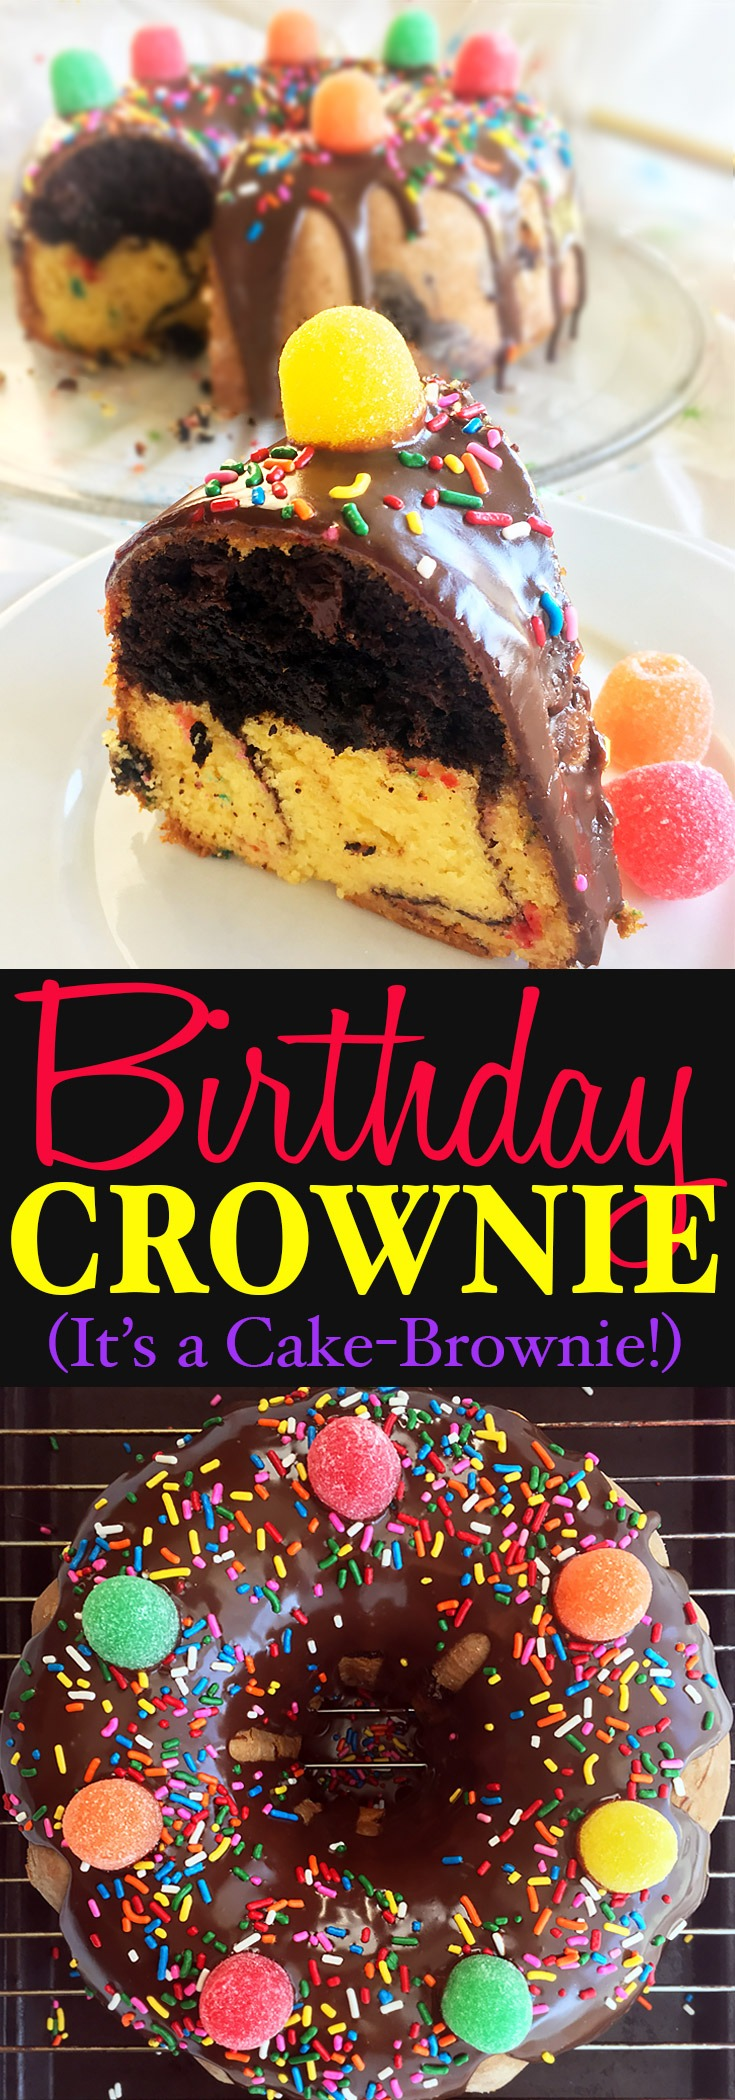 Birthday Crownie Cake-Brownie bundt cake with chocolate glaze